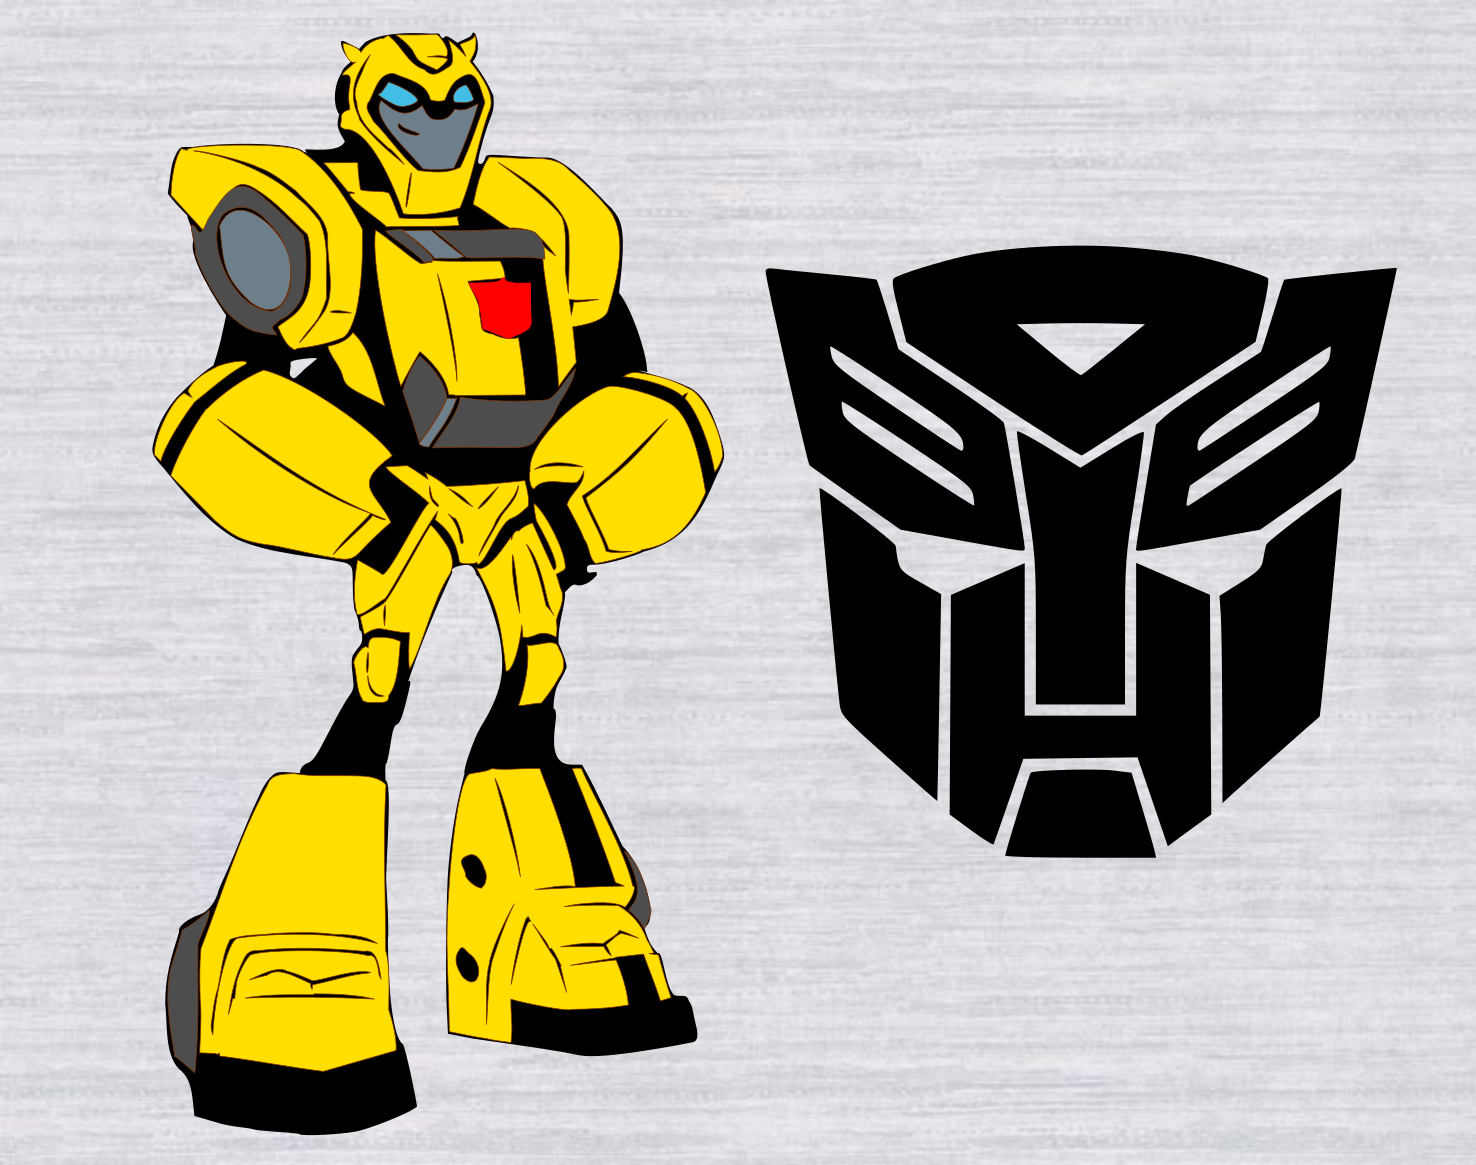 clipart freeuse download Transformers pencil and in. Bumblebee transformer clipart